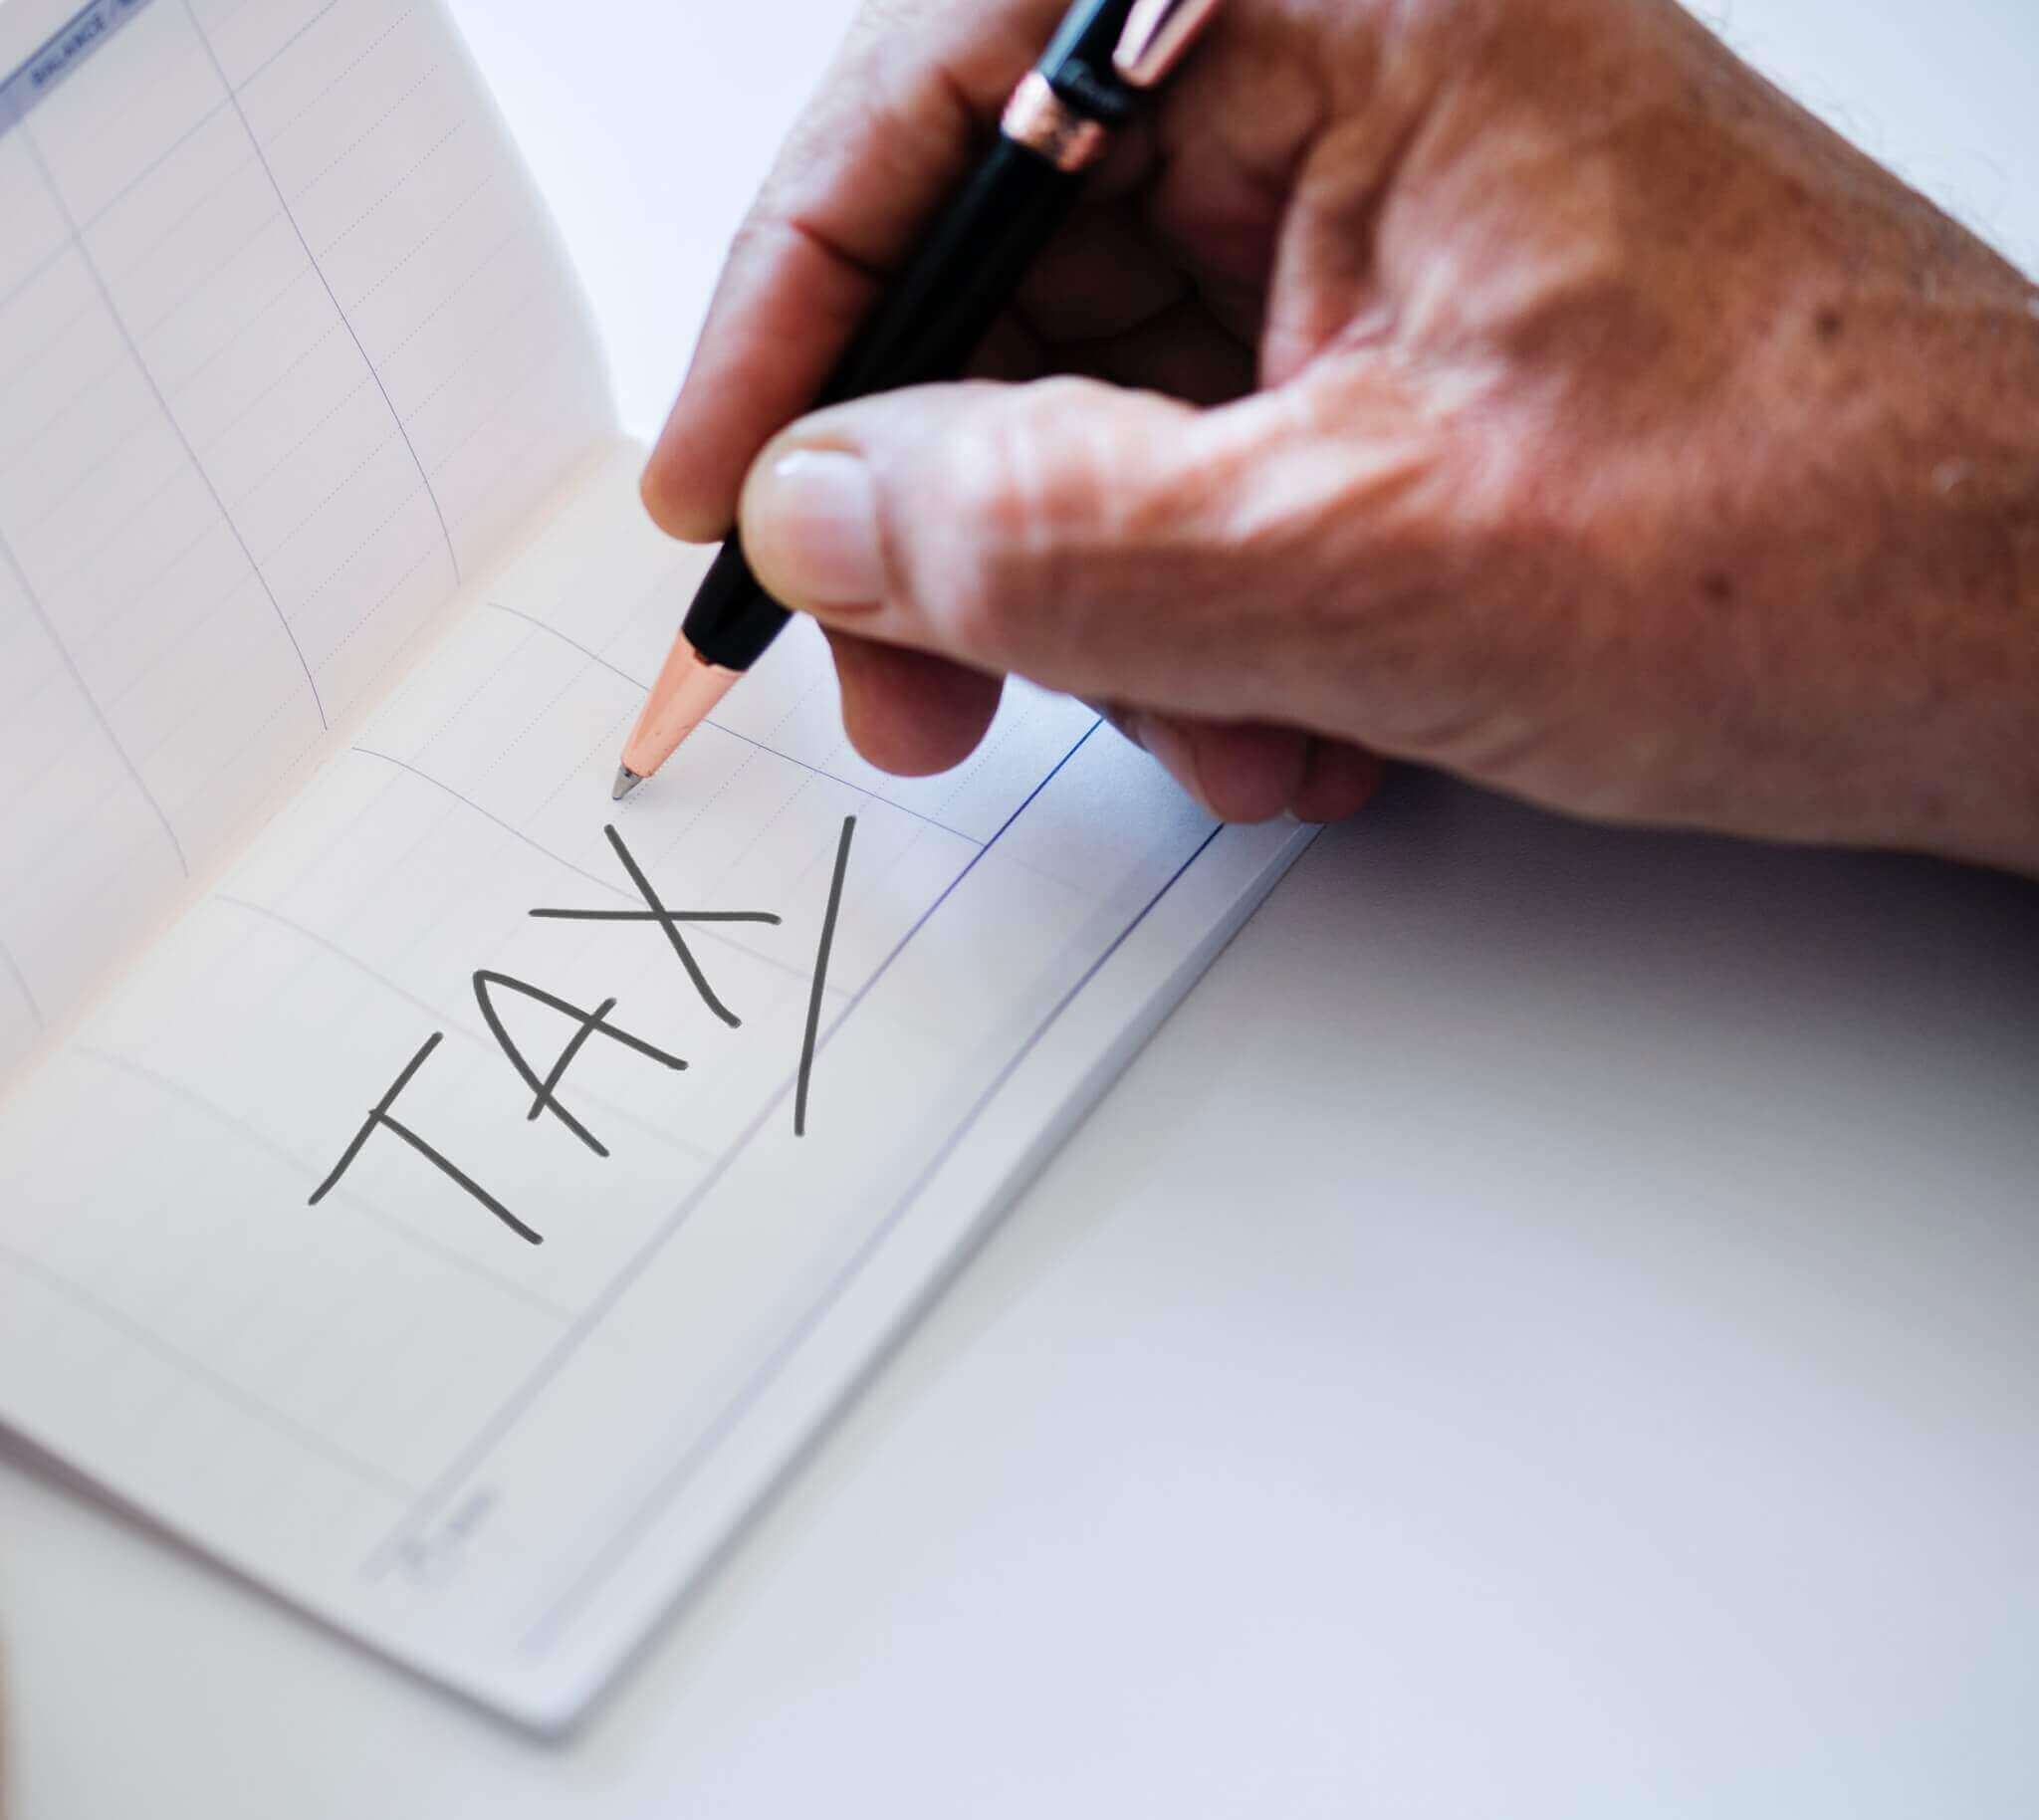 Tax Accountant: When Do I Have to Pay Taxes in Mexico as an Expat?